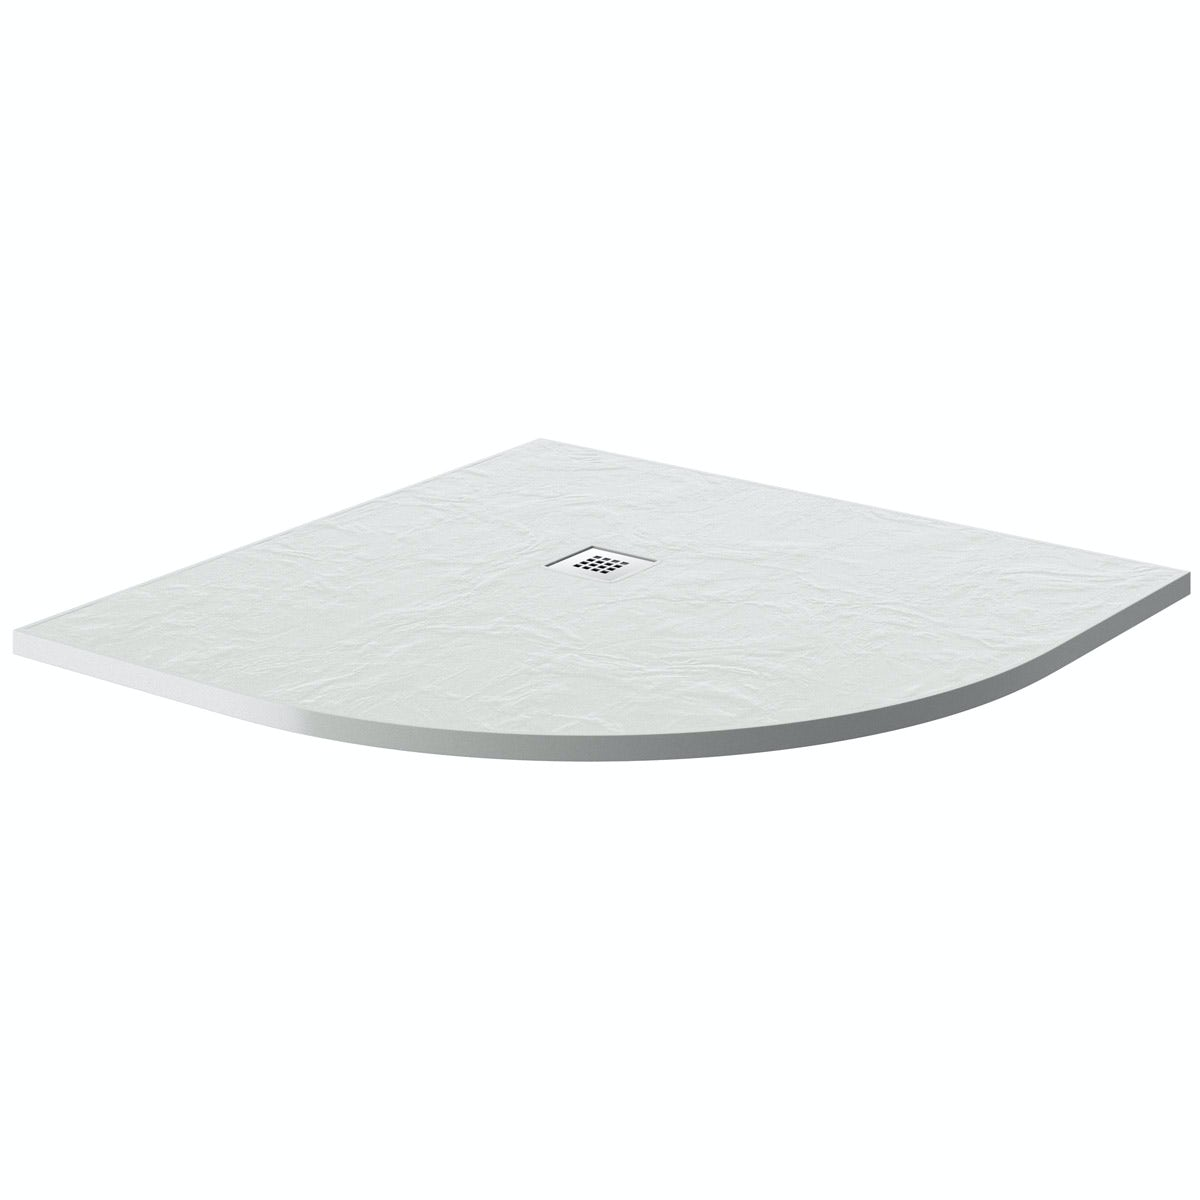 Mode white slate effect quadrant stone shower tray 900 x 900